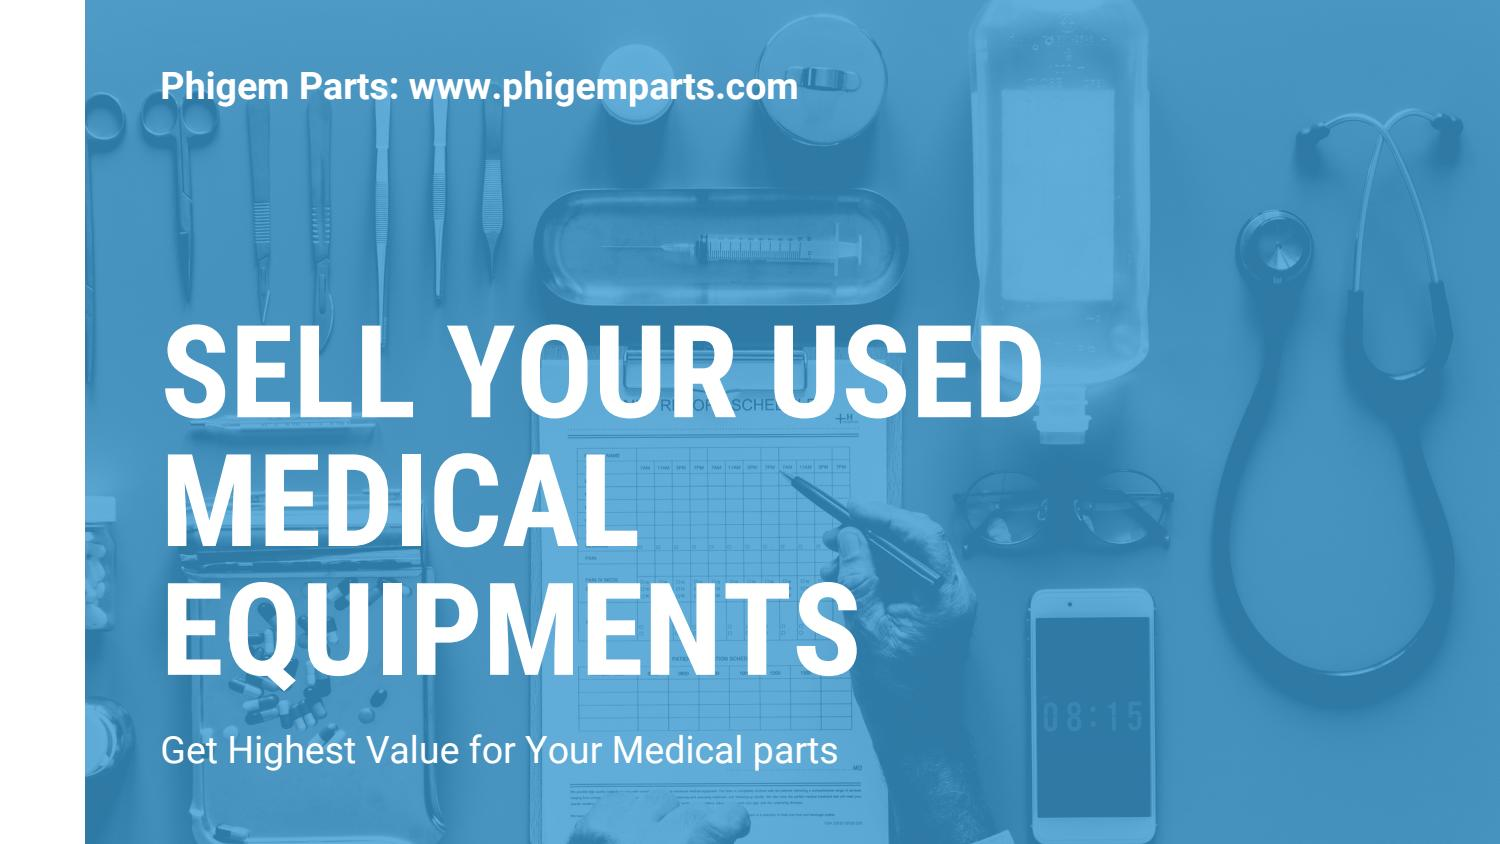 Sell Your Used Medical Equipment & Get Higher Value at